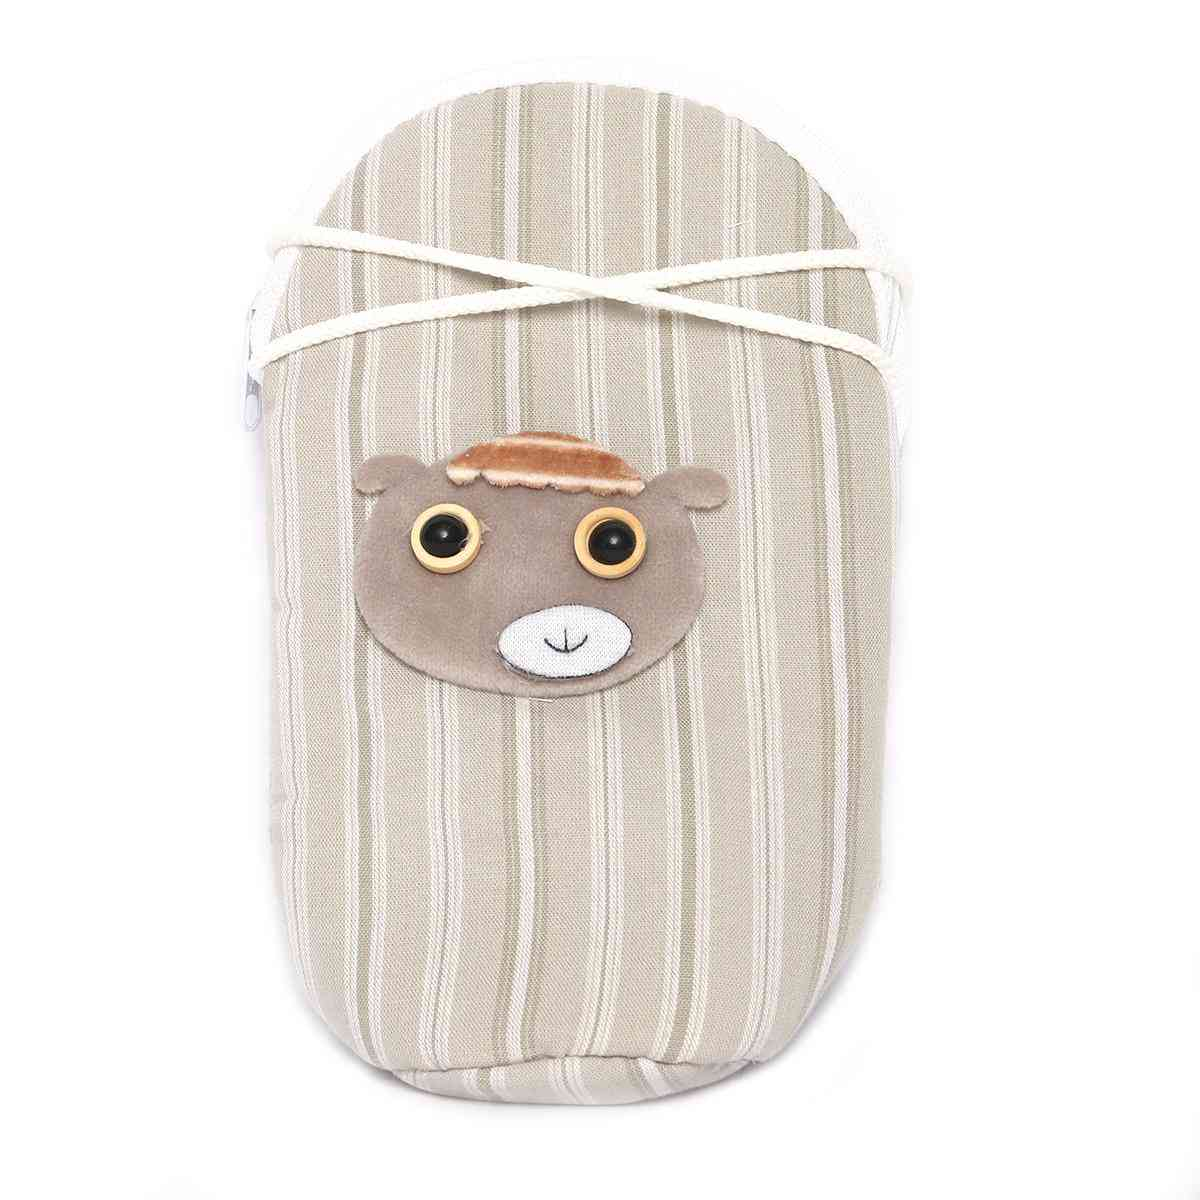 Vitamin Baby Cartoon Character 7x4 Inches Feeder Cover for Feeder Bottle with String  Gray